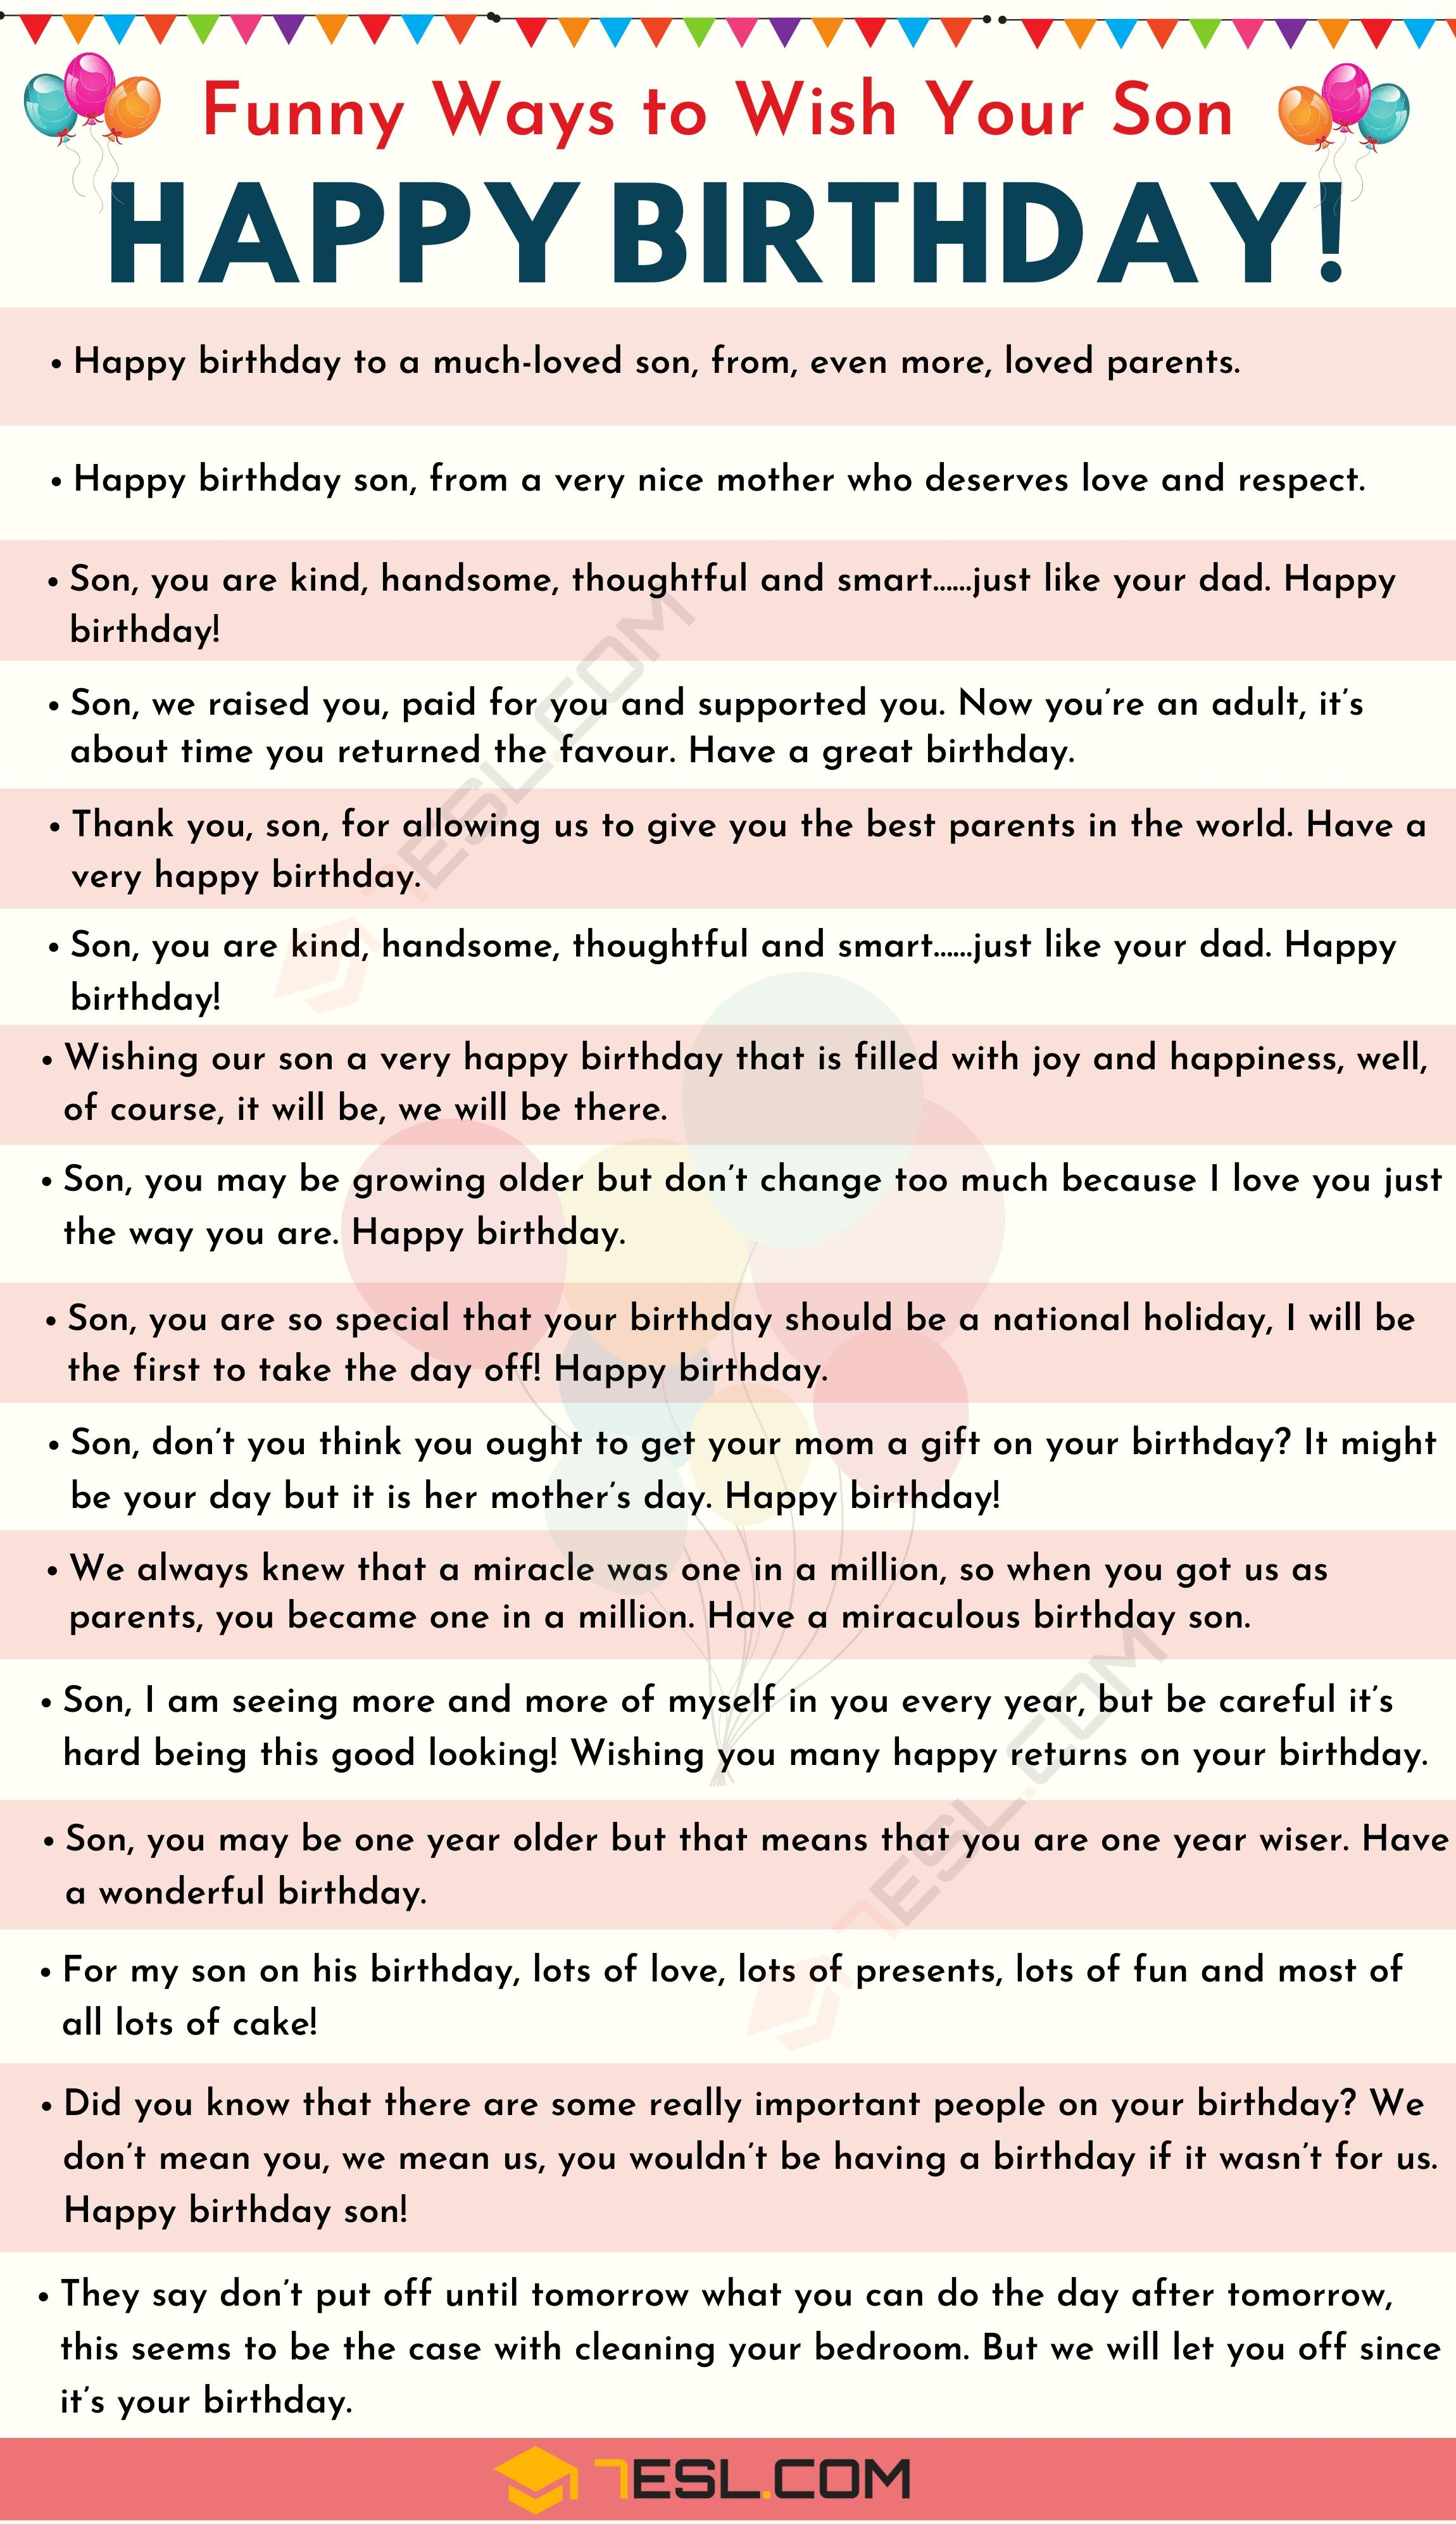 Happy Birthday Son: 35+ Meaningful and Funny Birthday Wishes for Son